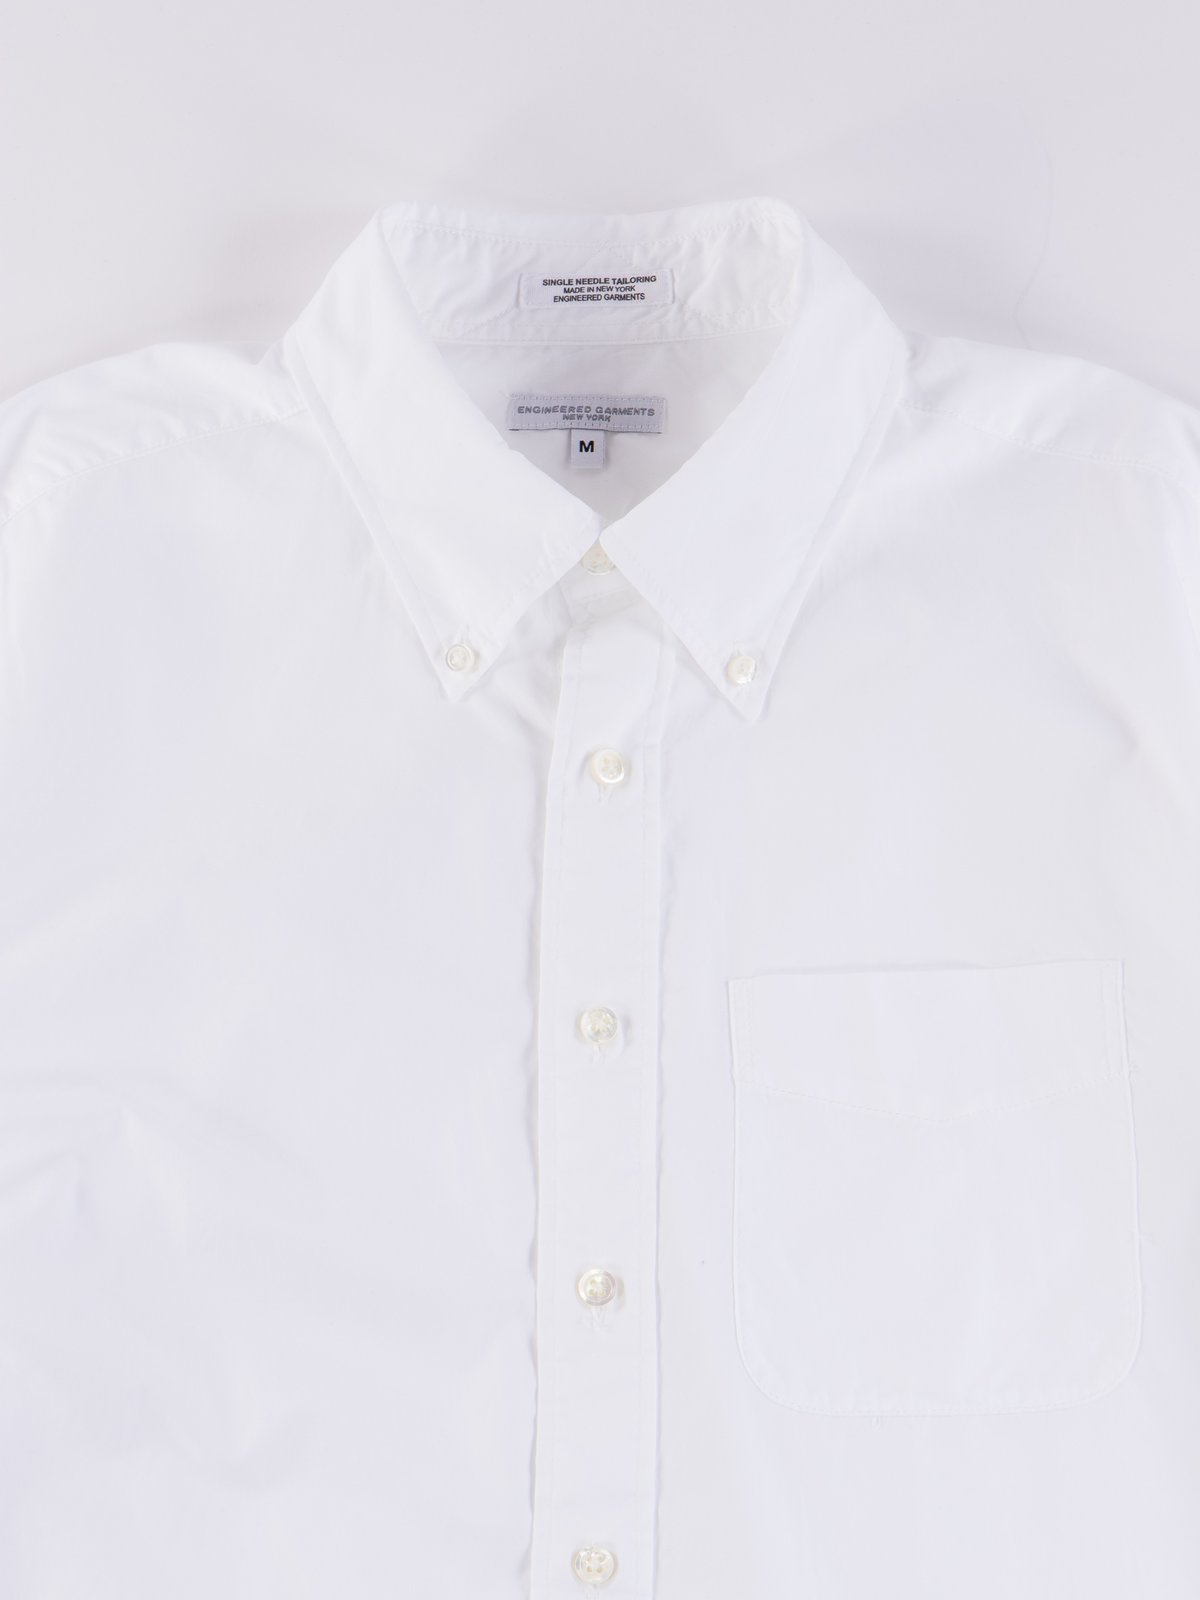 White 100's 2Ply Broadcloth 19th Century BD Shirt - Image 4